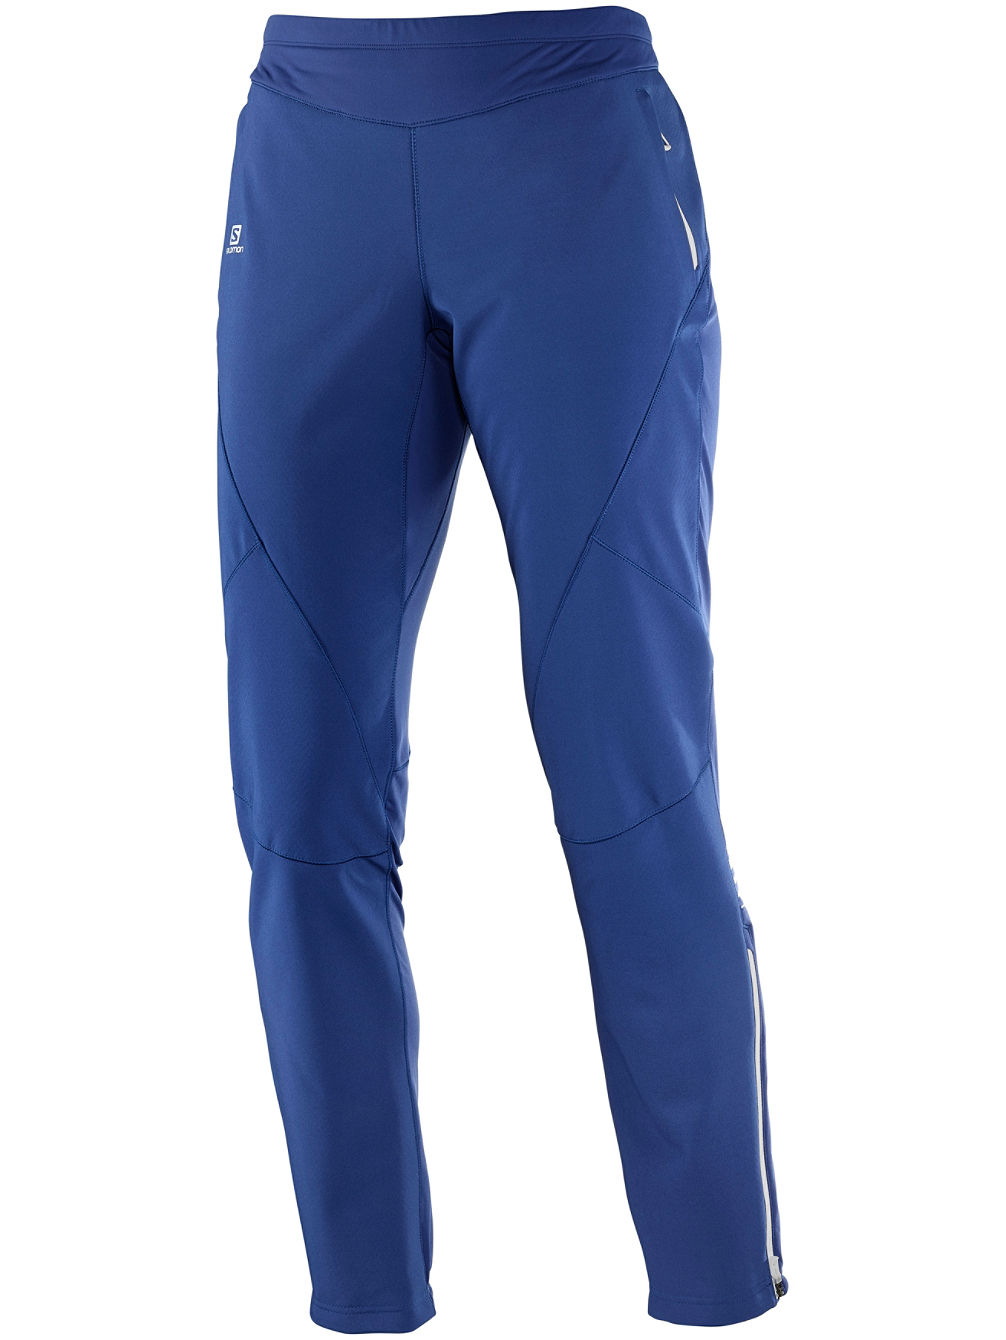 Lightning Warm Softshell Pants